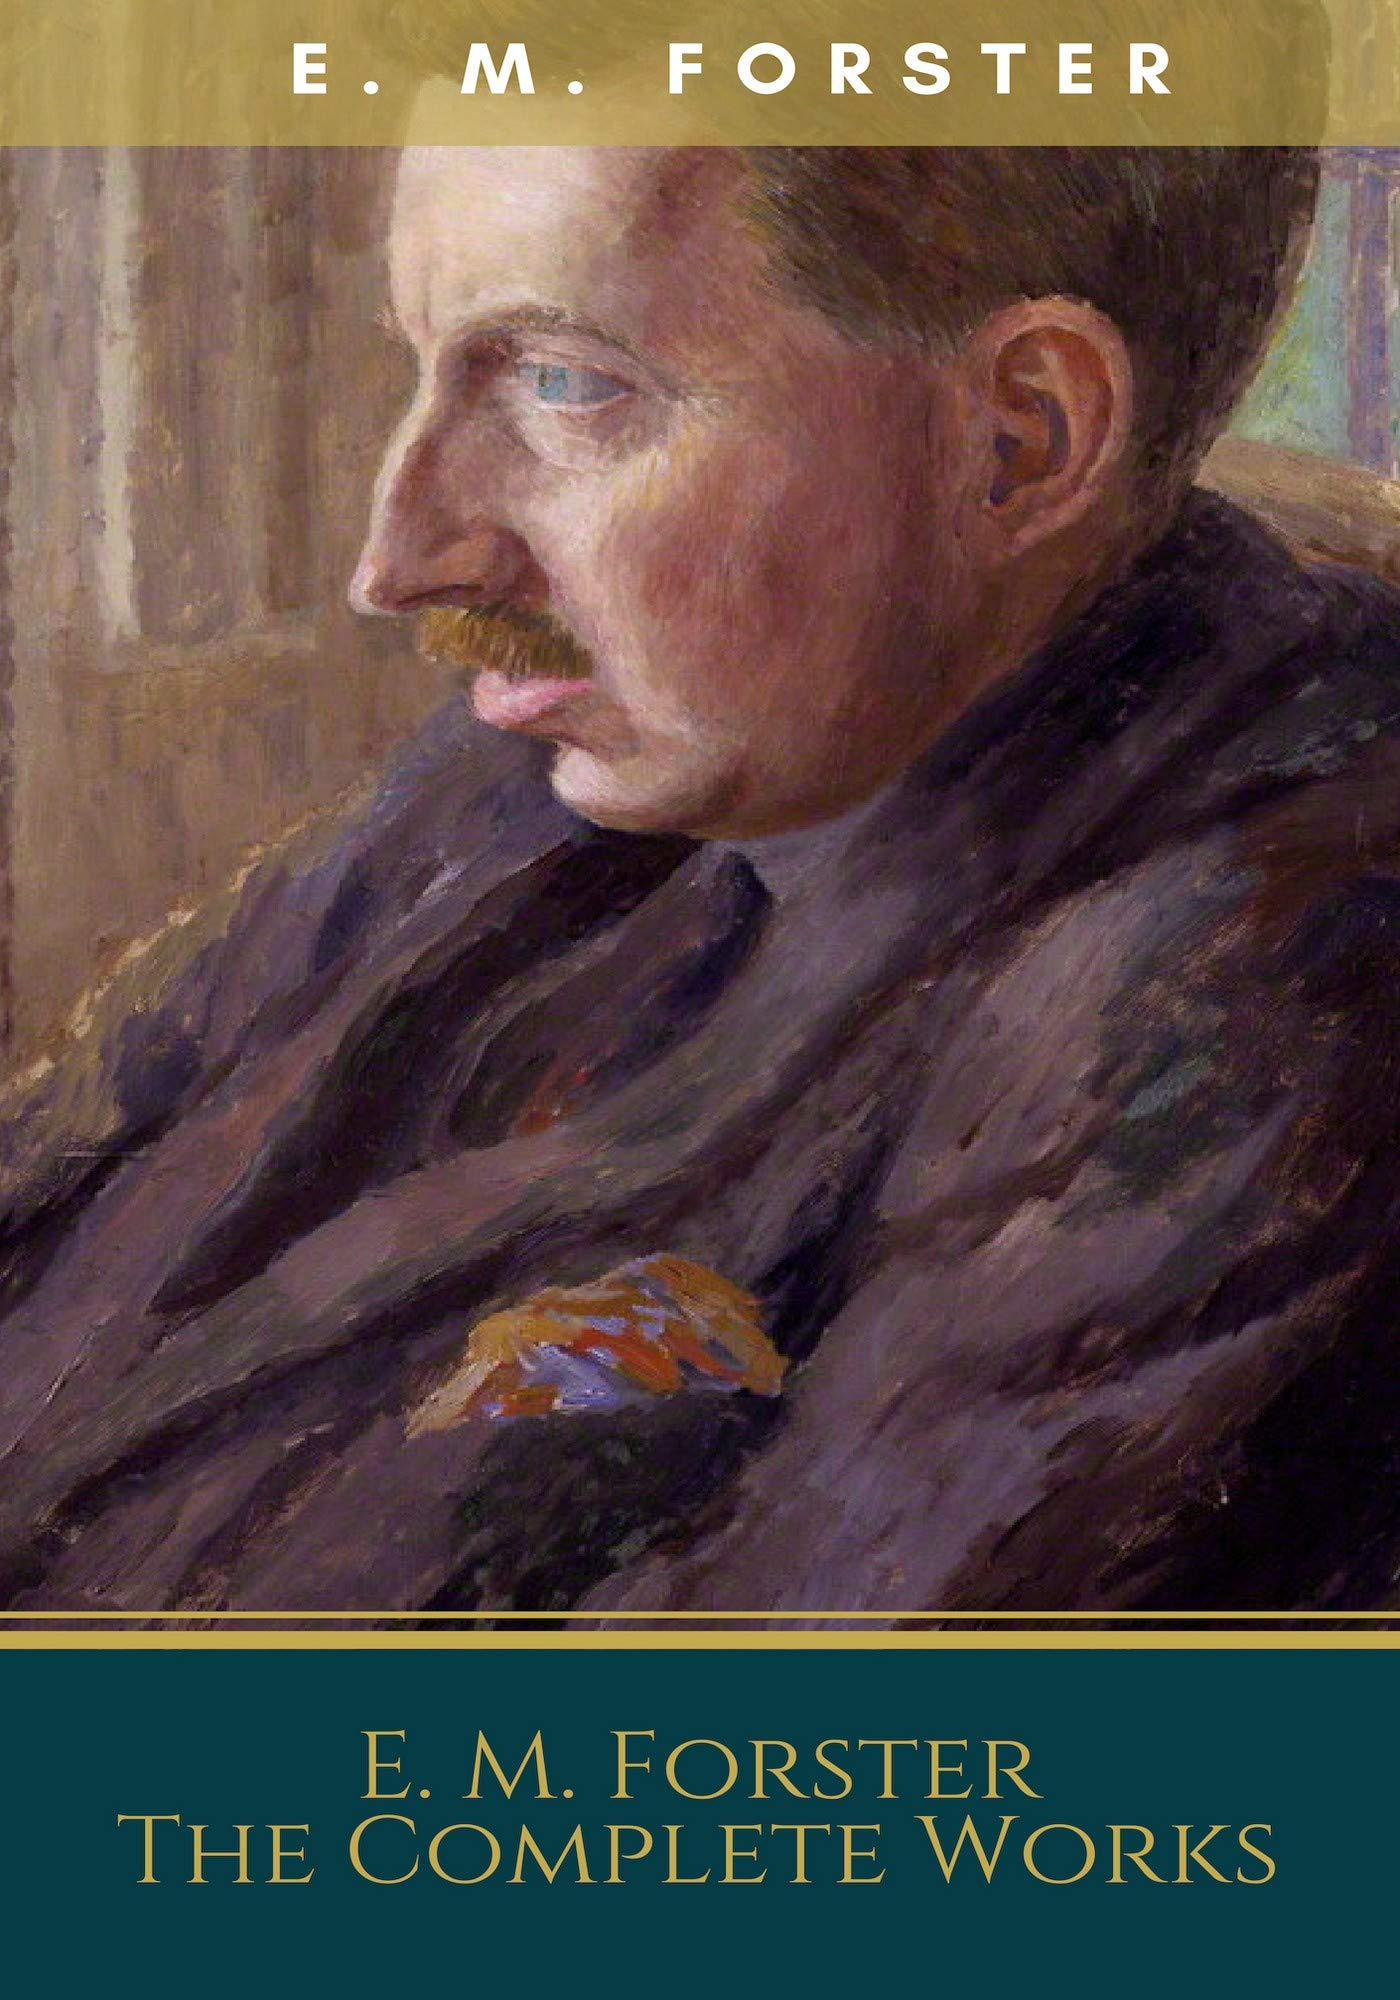 E. M. Forster The Complete Works (Annotated)